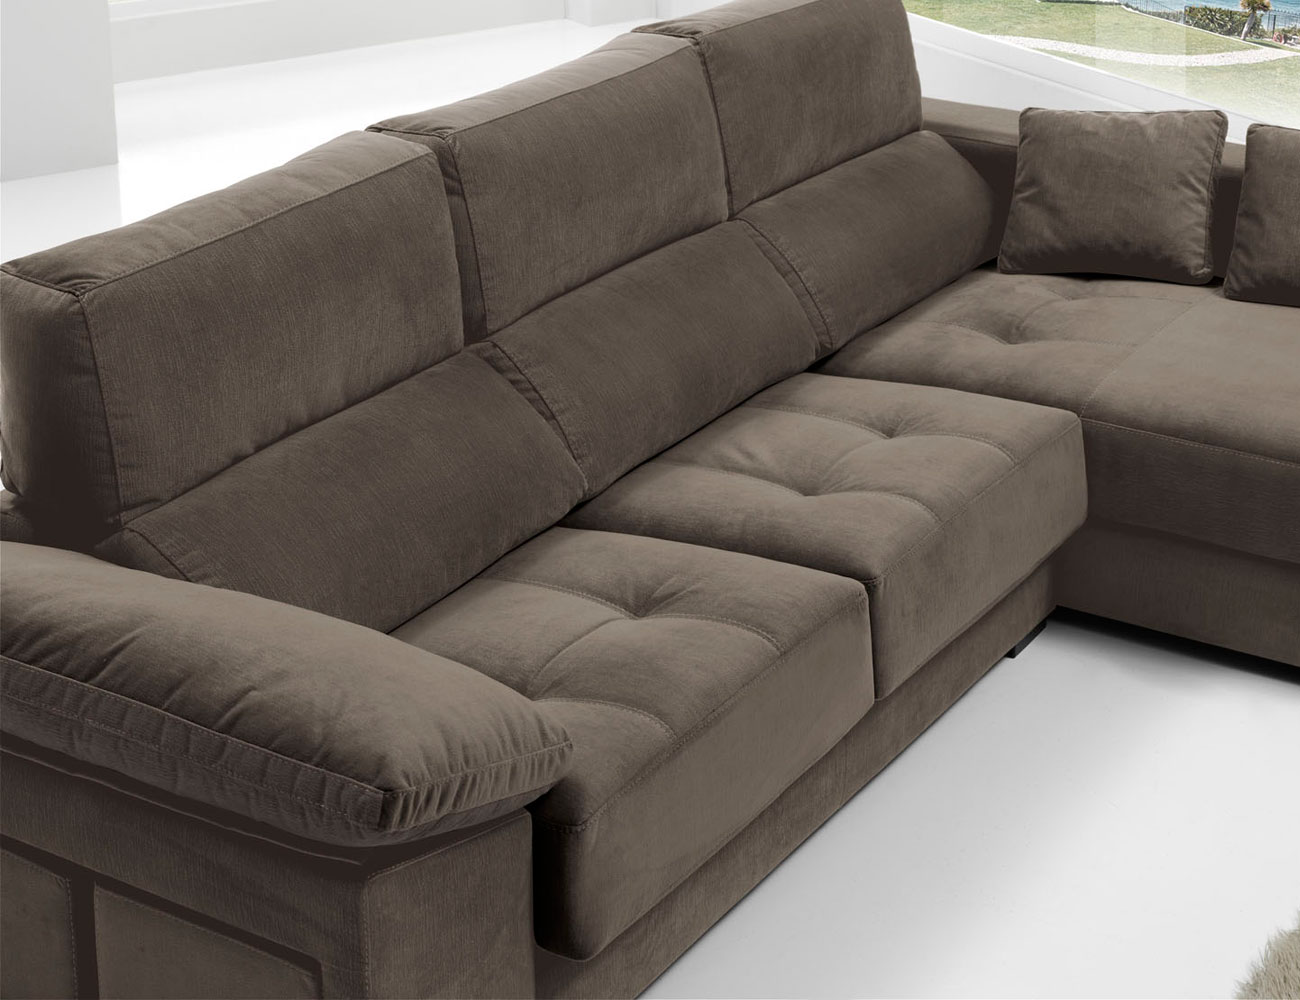 Sofa chaiselongue anti manchas bering pouf 286